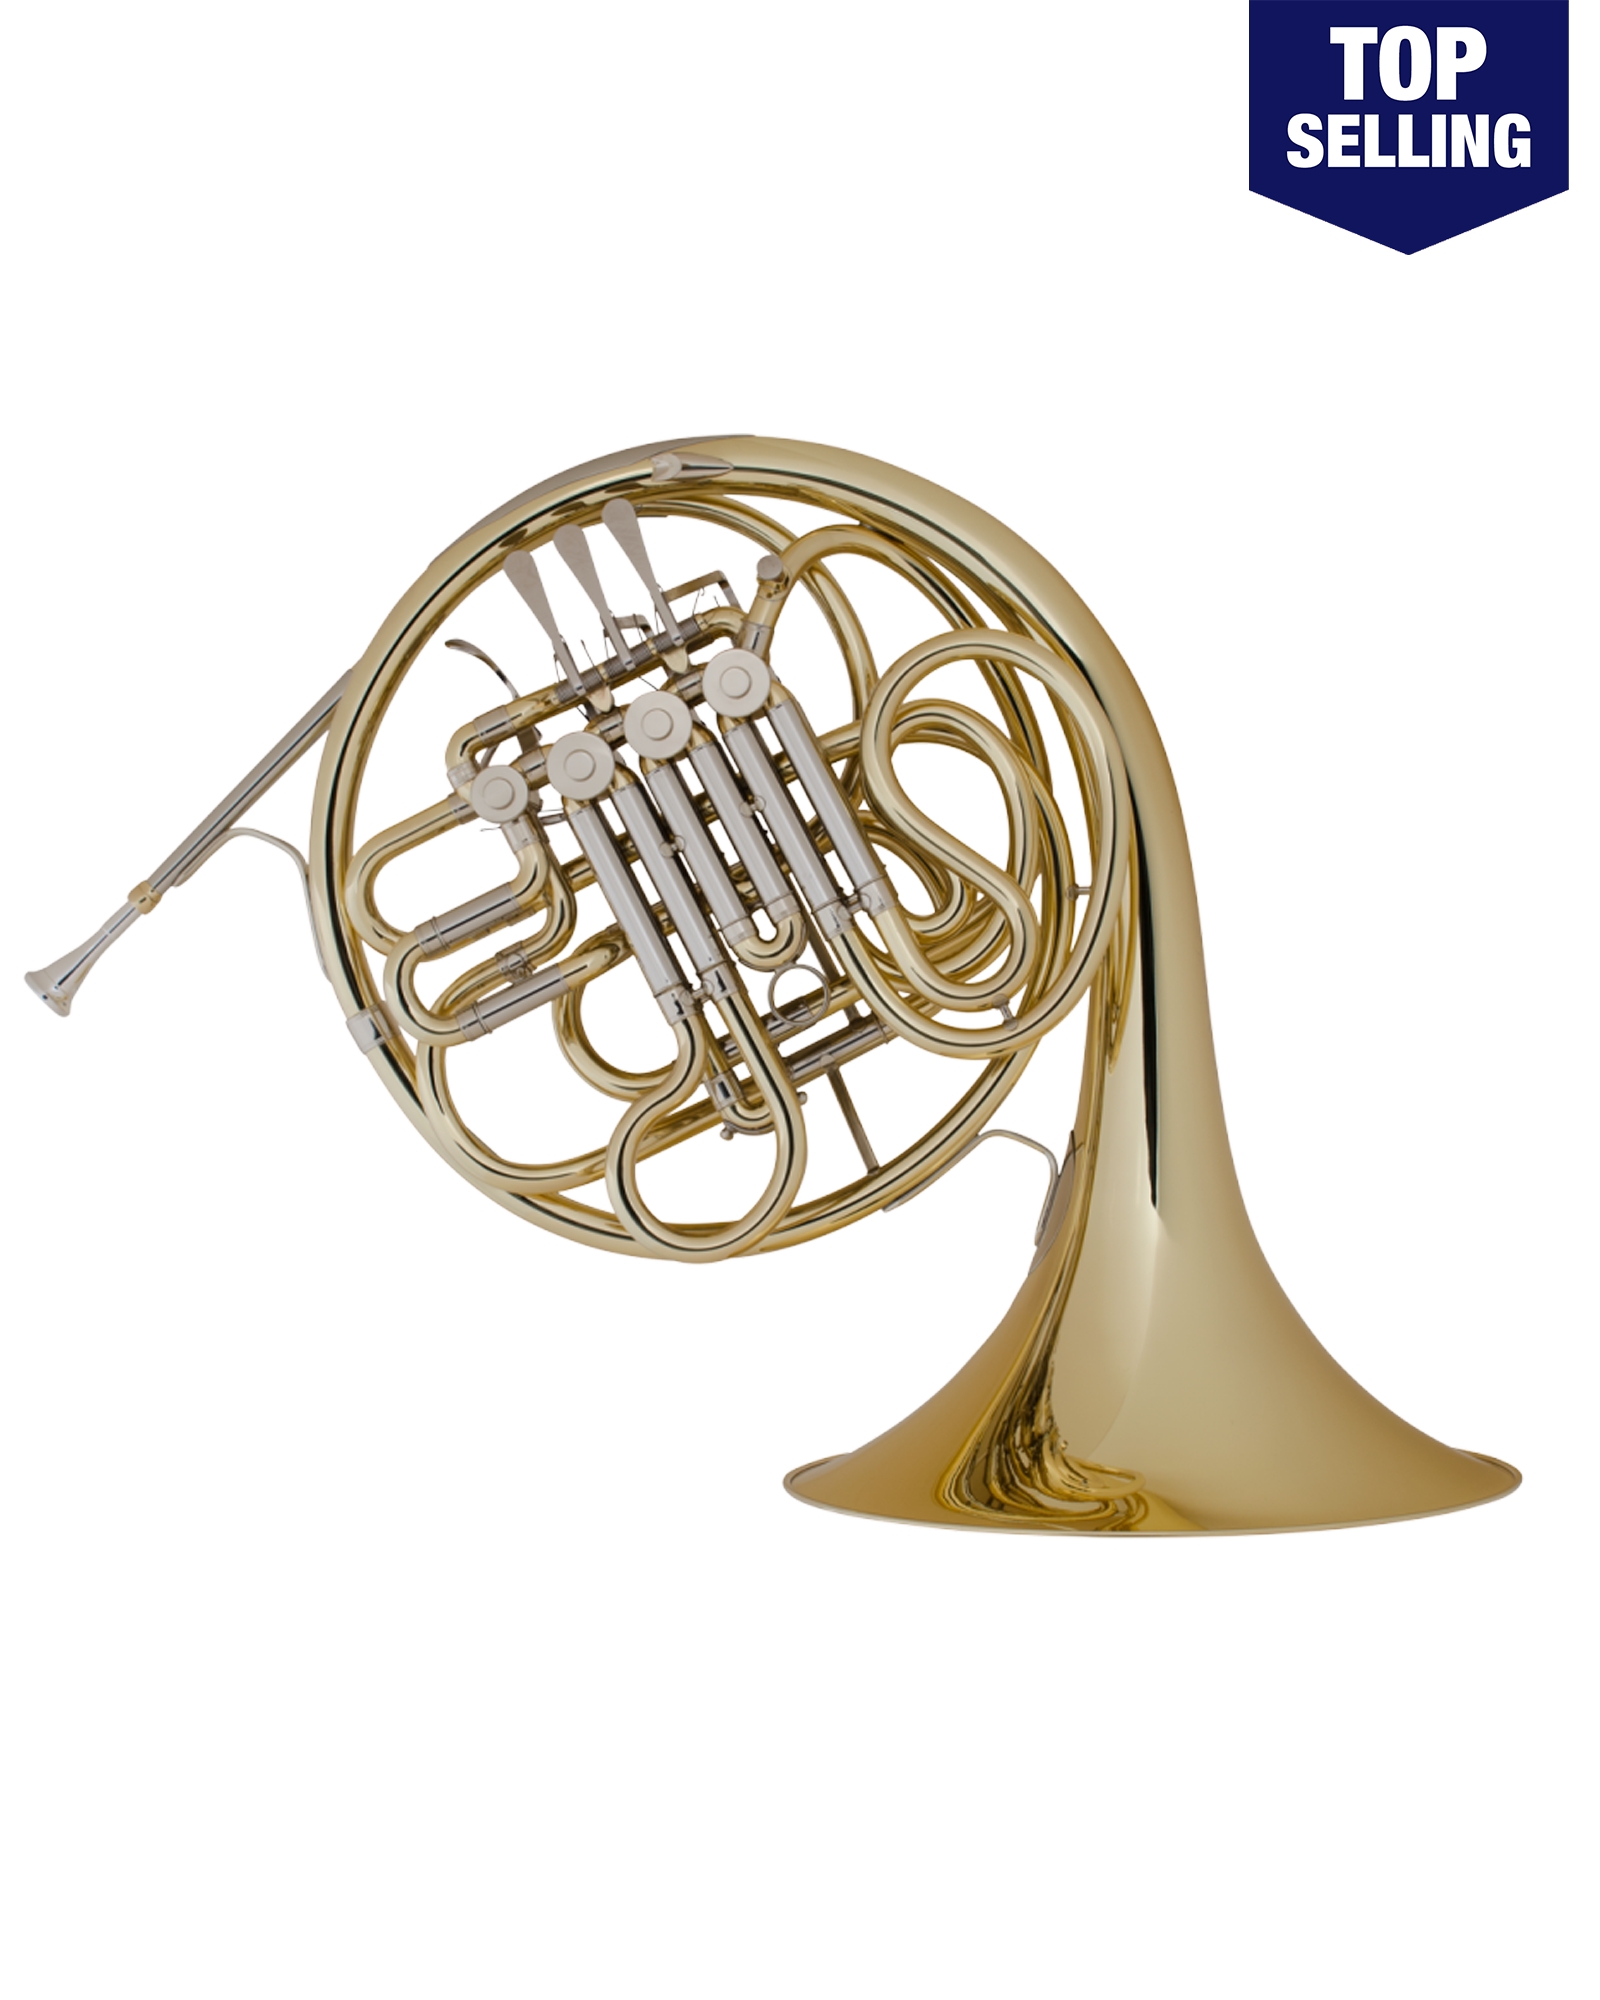 CG Conn Step-Up Model 6D Double French Horn